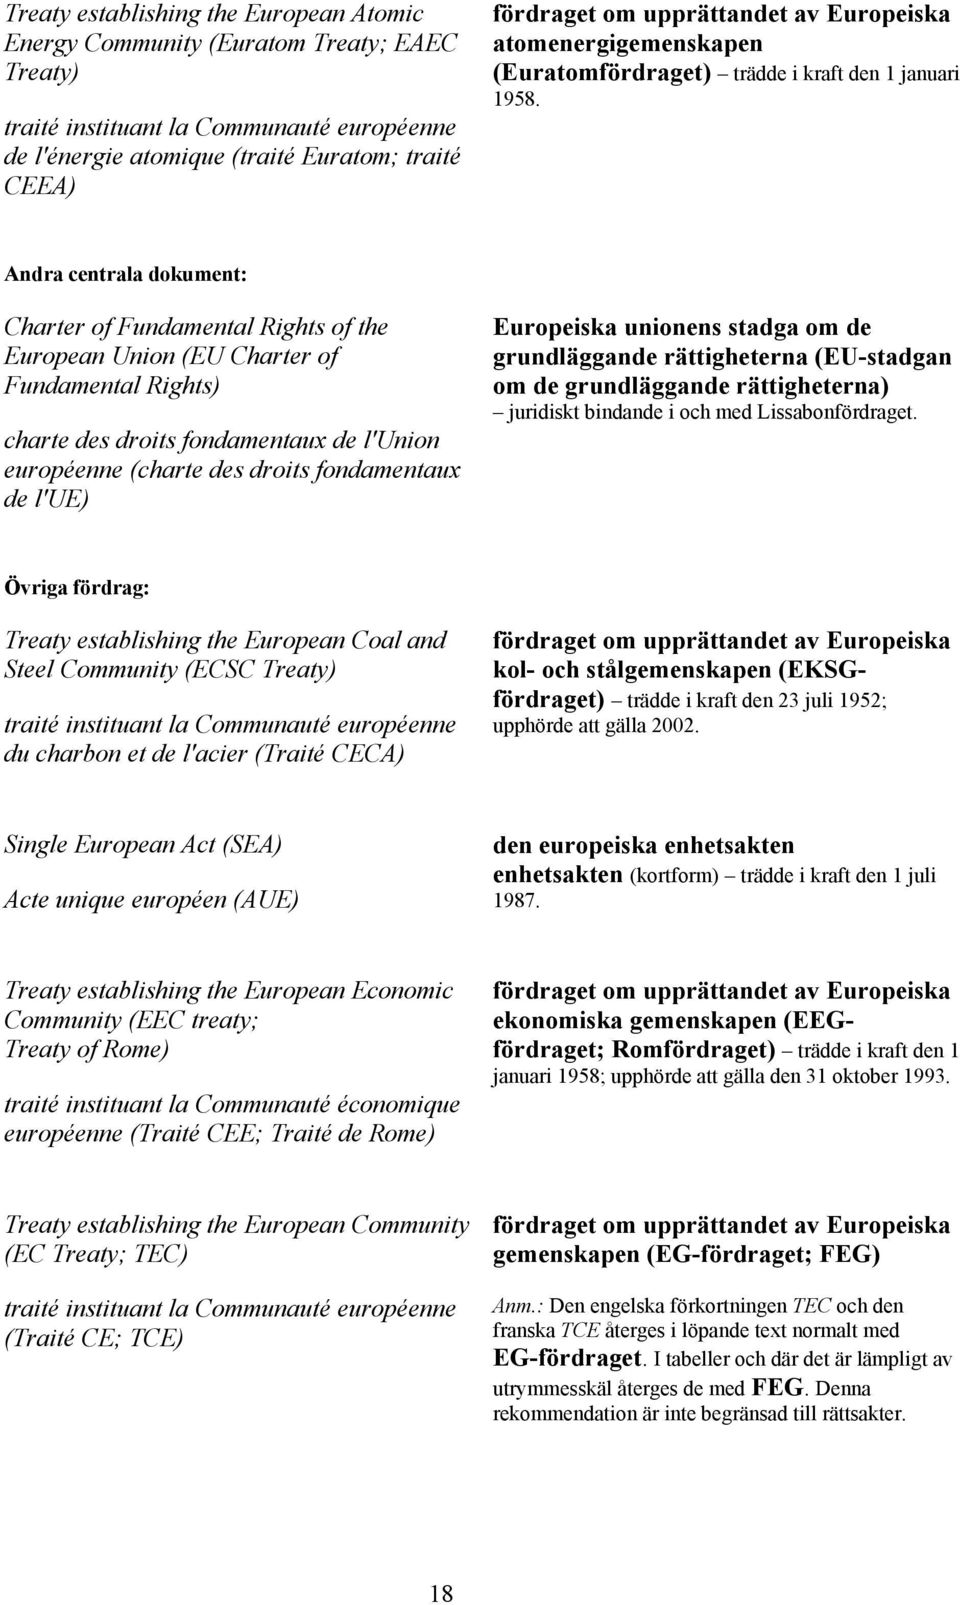 Andra centrala dokument: Charter of Fundamental Rights of the European Union (EU Charter of Fundamental Rights) charte des droits fondamentaux de l'union européenne (charte des droits fondamentaux de